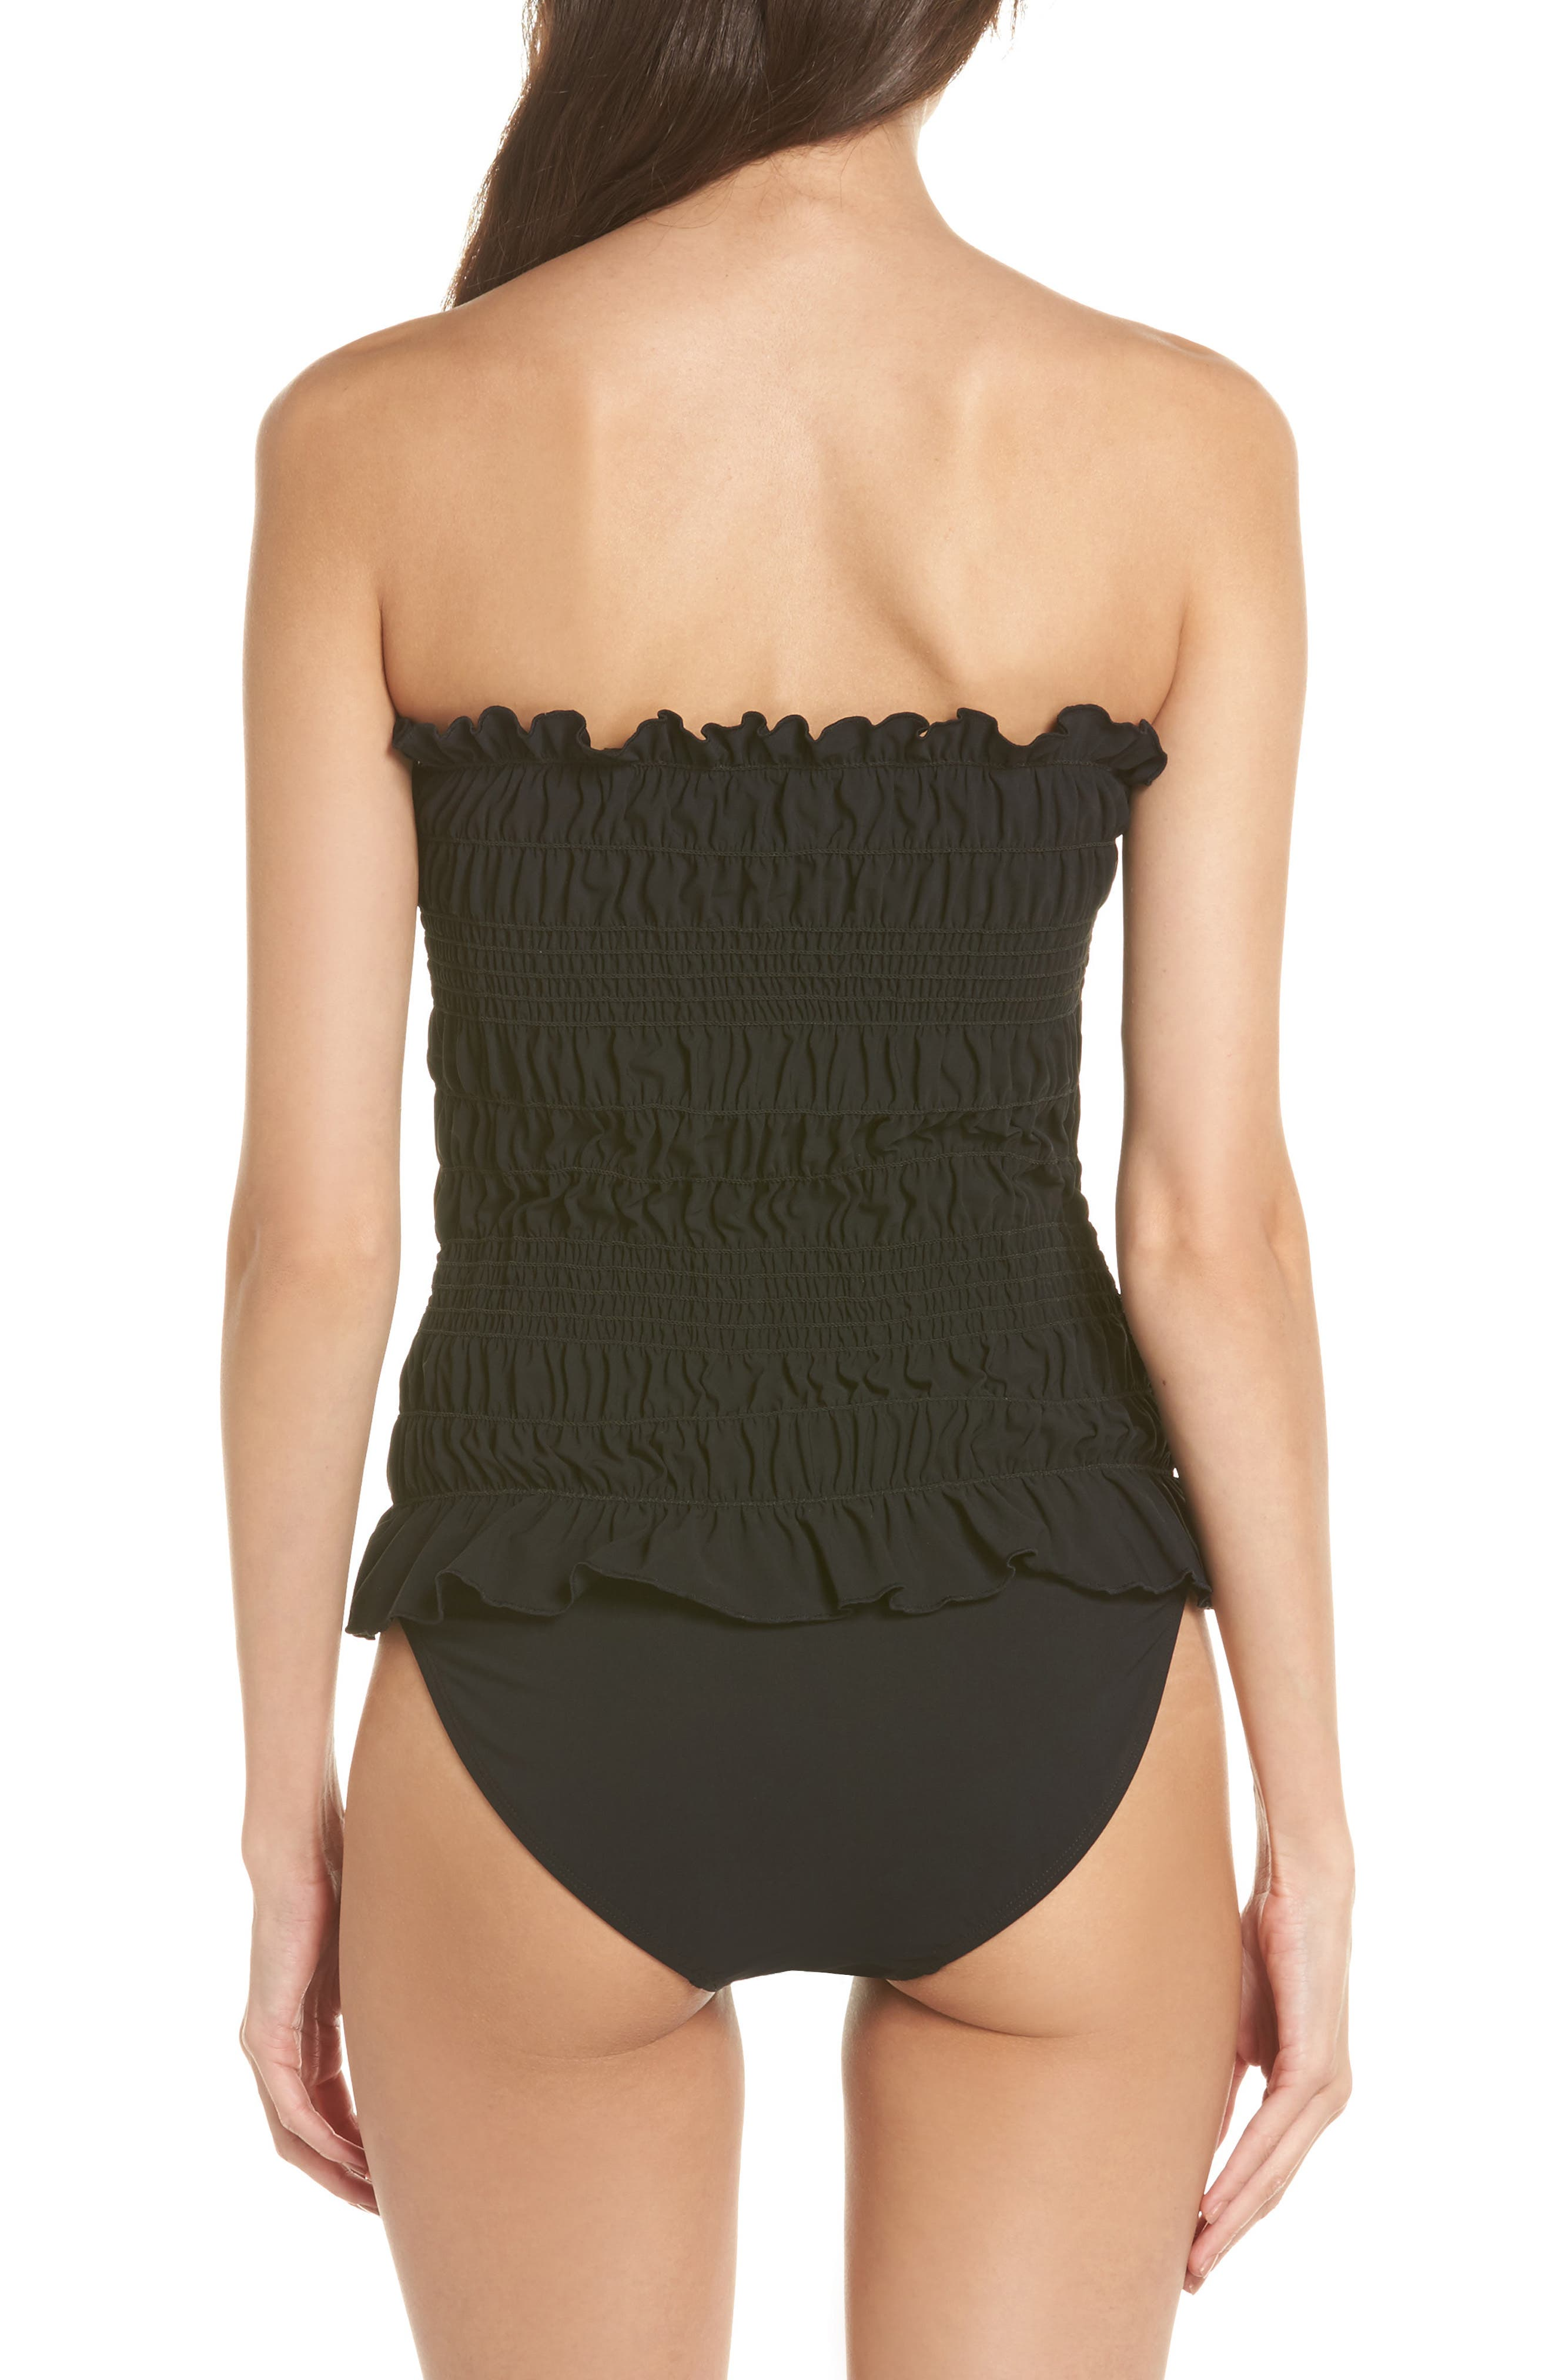 Costa Smocked One-Piece Swimsuit,                             Alternate thumbnail 3, color,                             Black / Black